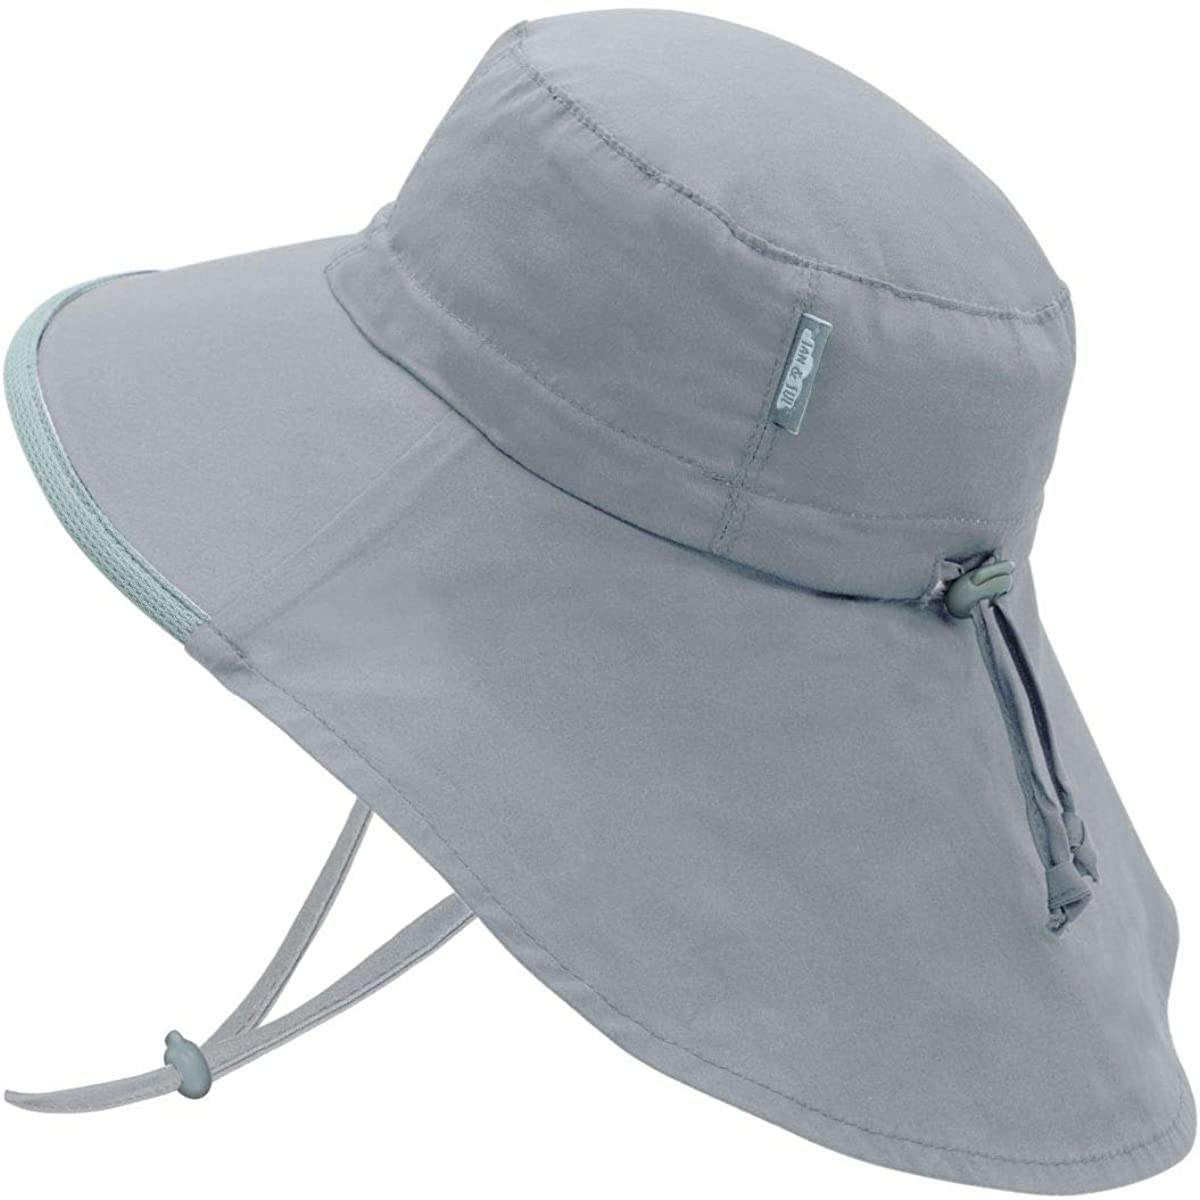 JAN JUL GRO-with-Me Challenge the lowest price of Japan Cotton Adventure Adjustable 50+ High quality Hat UPF